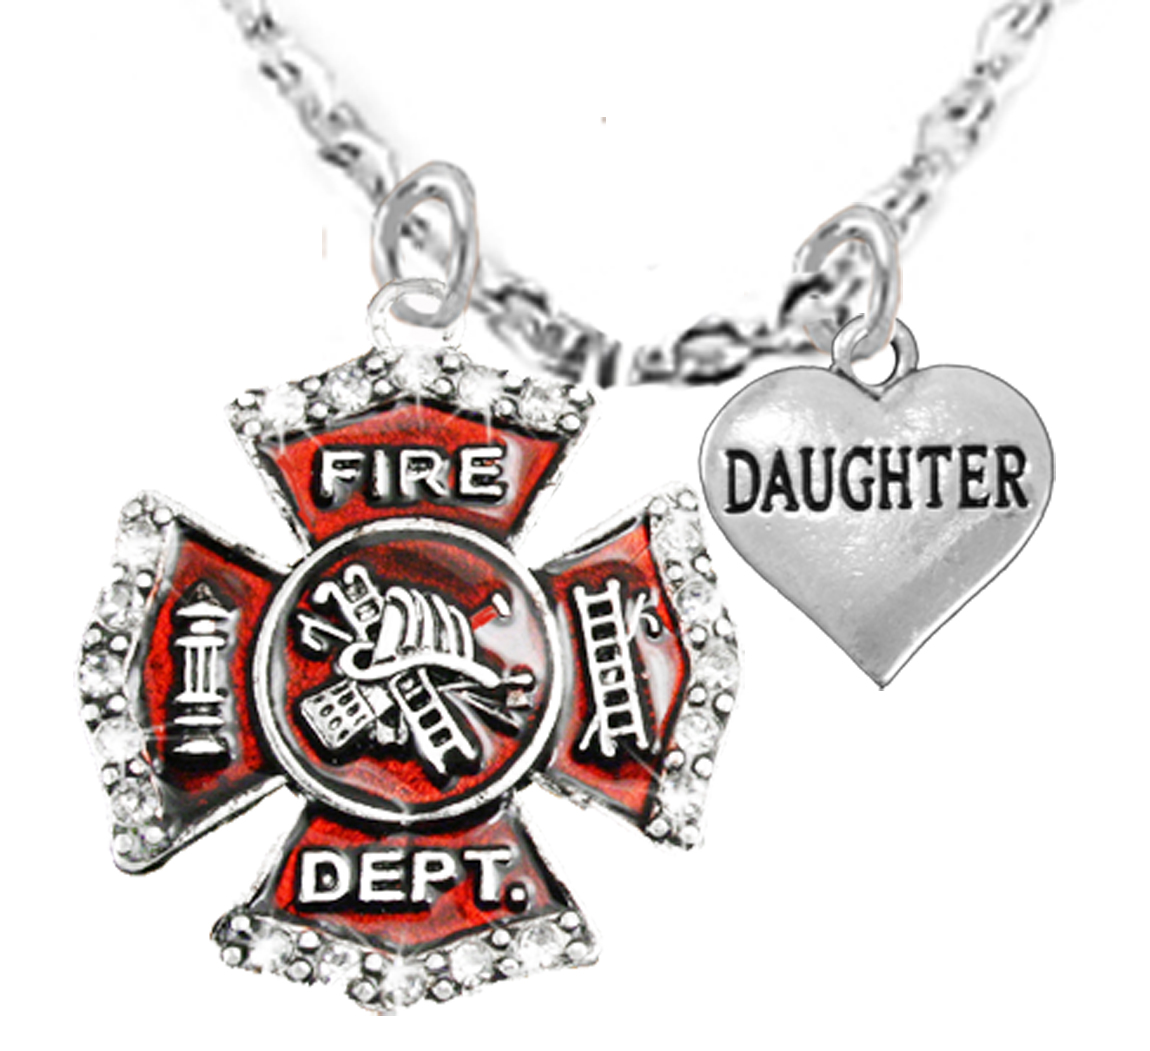 st and jewelry firedogjewelry cross pendant education com custom firedogjewelrycom pendants firefighter florian maltese product careers memorials collectibles awards